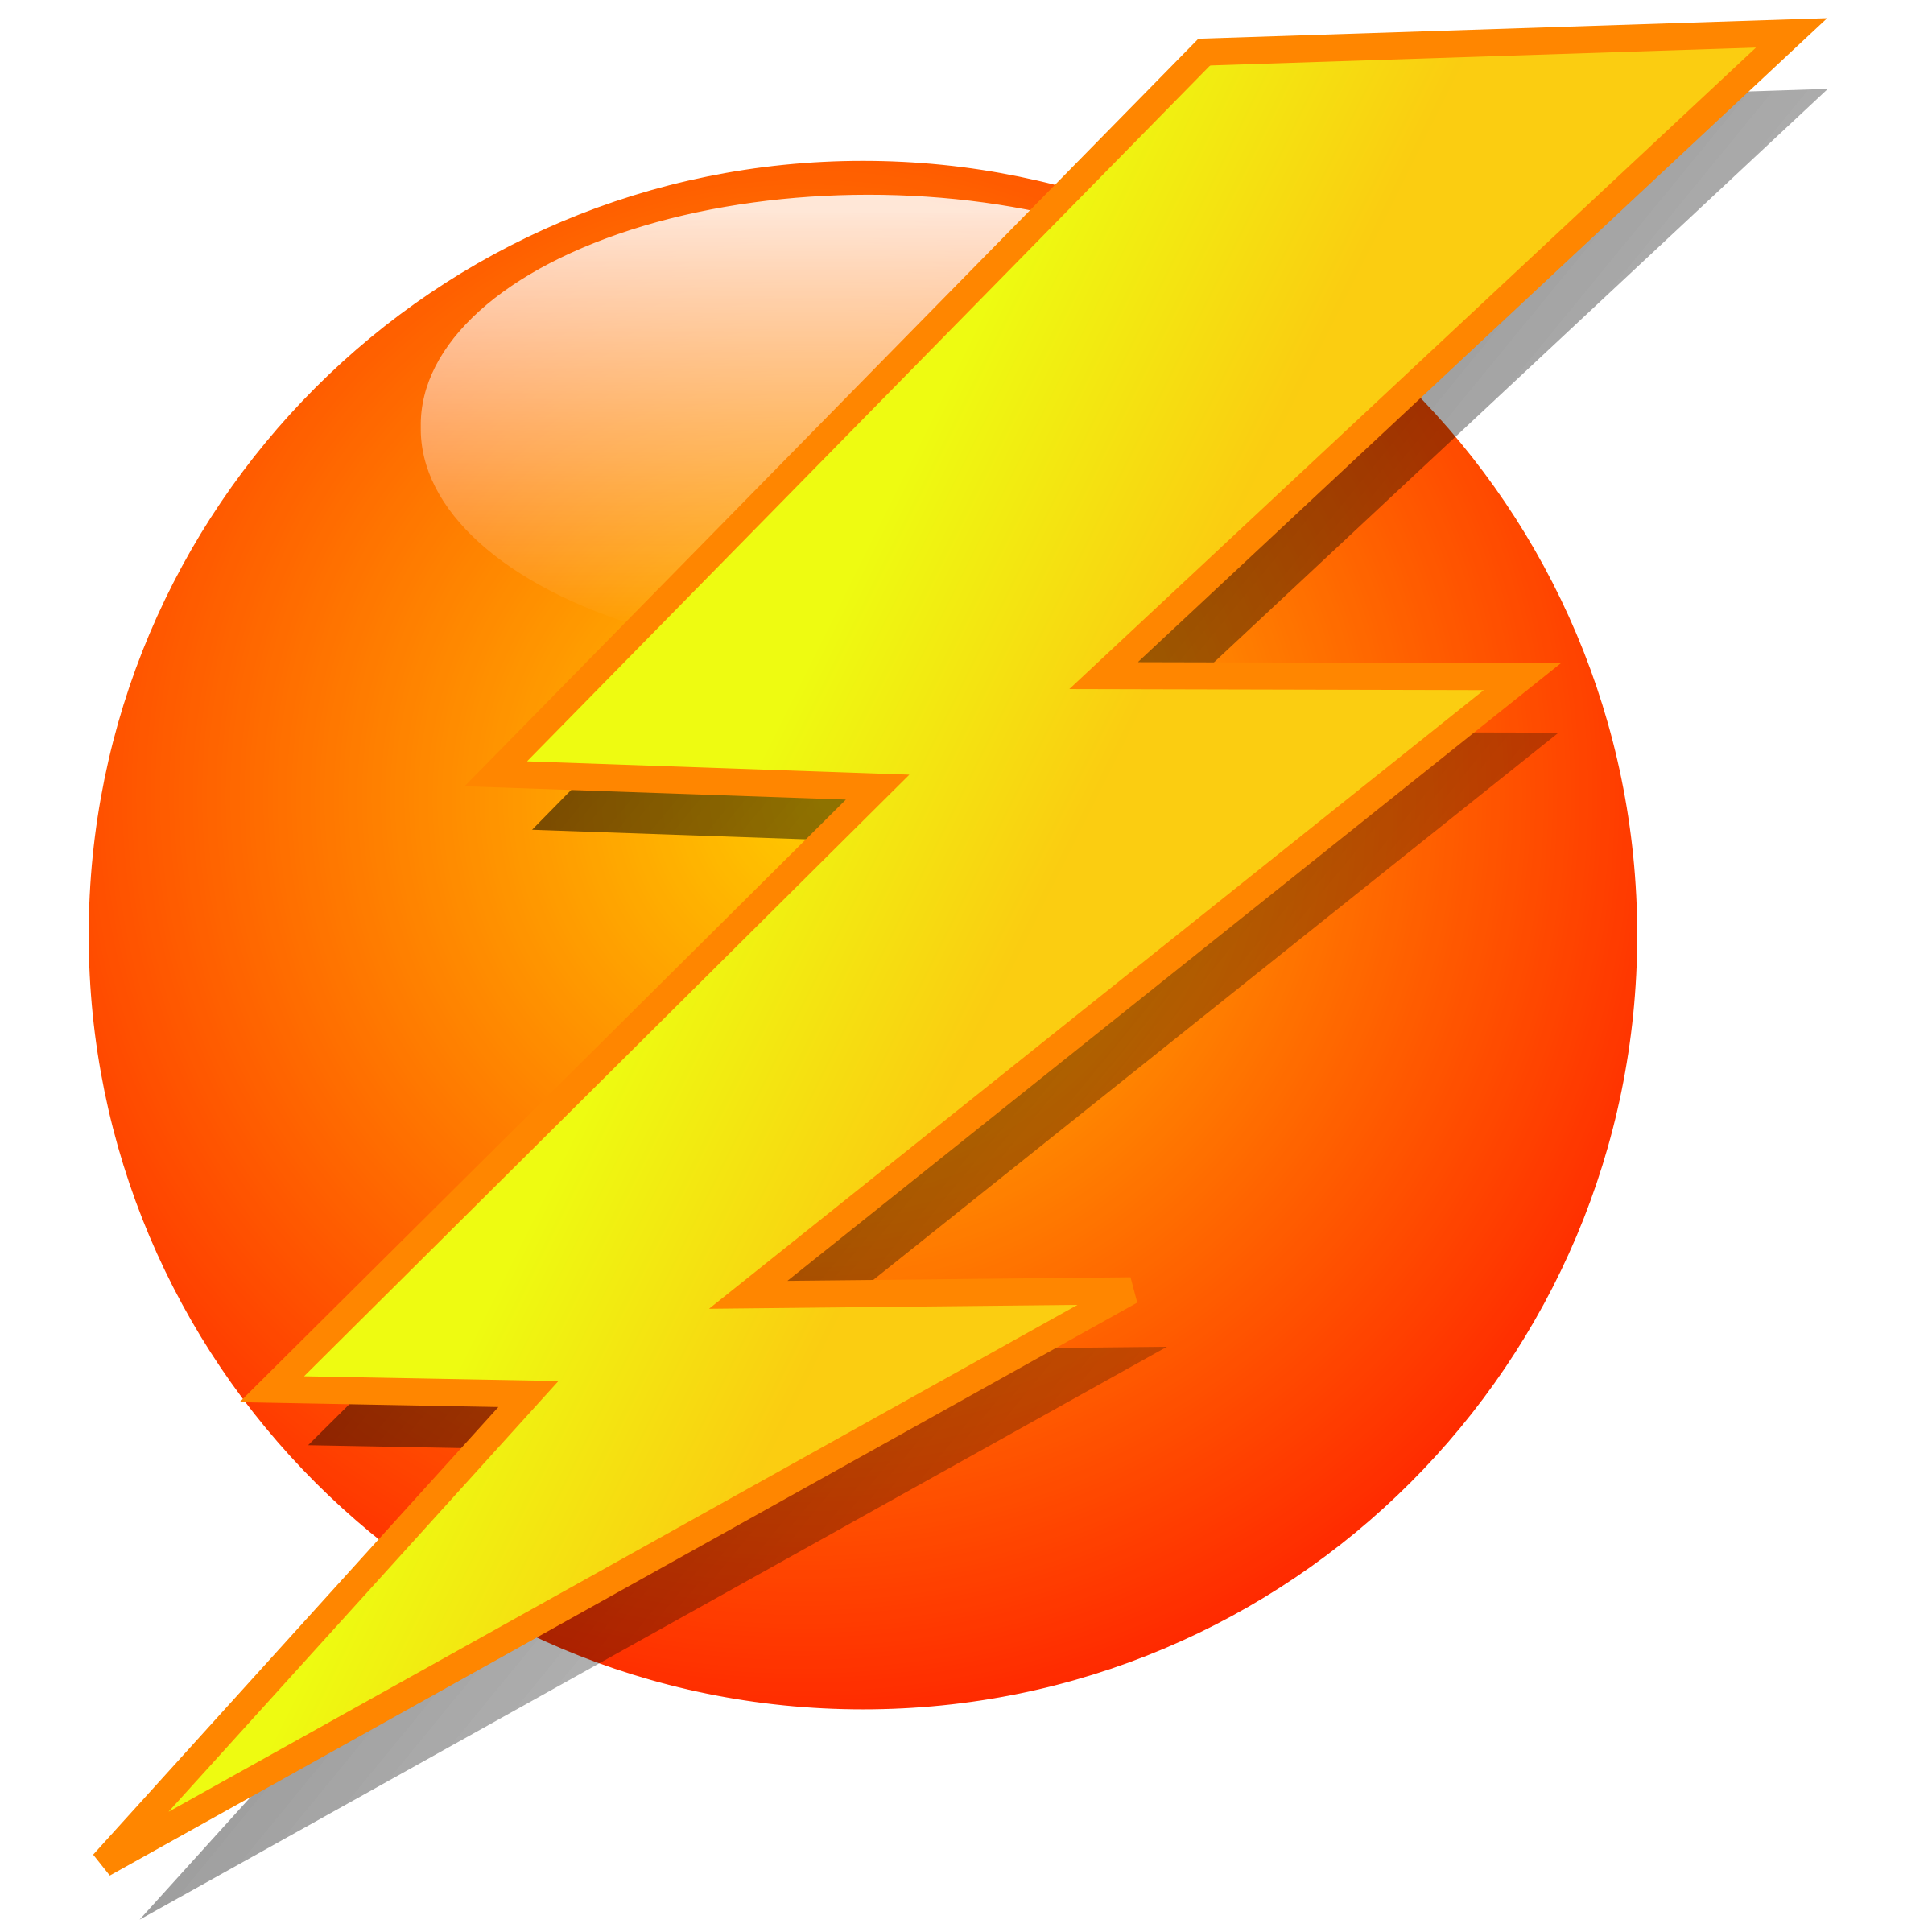 Electric clipart fixed expense. Lamp png stunning baytown